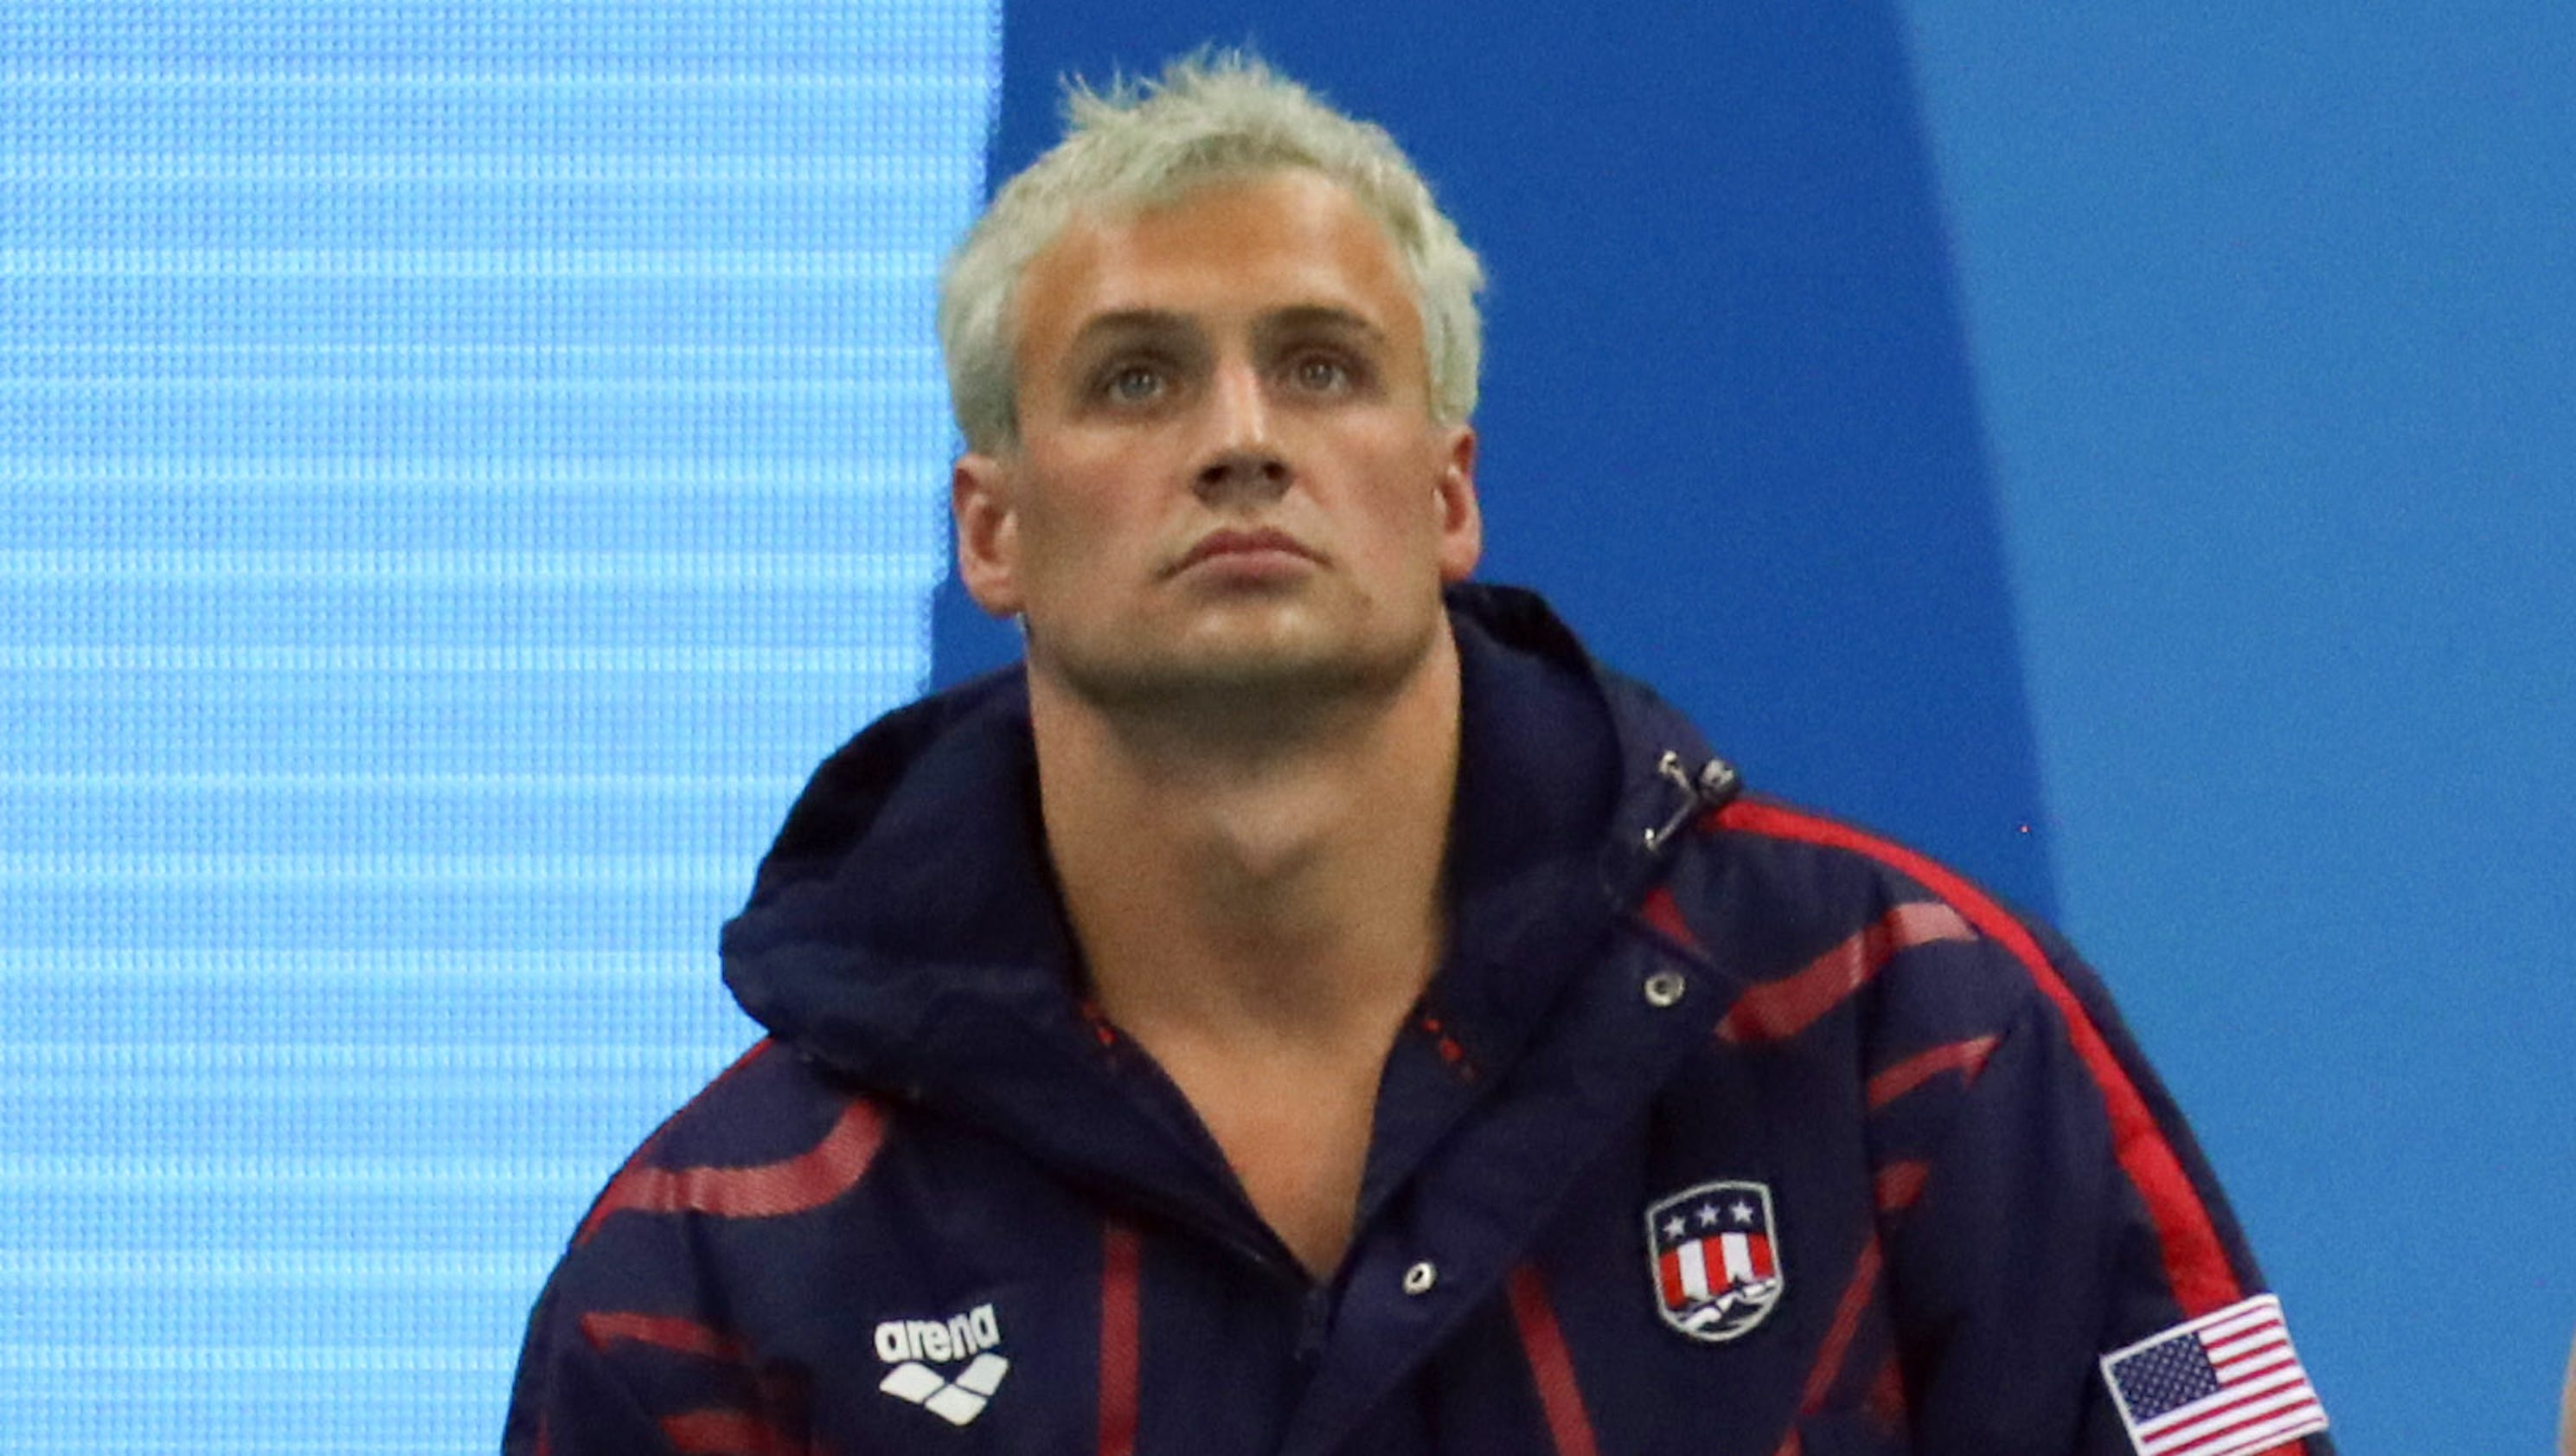 Police Say Ryan Lochte Swimmers Lied About Alleged Robbery